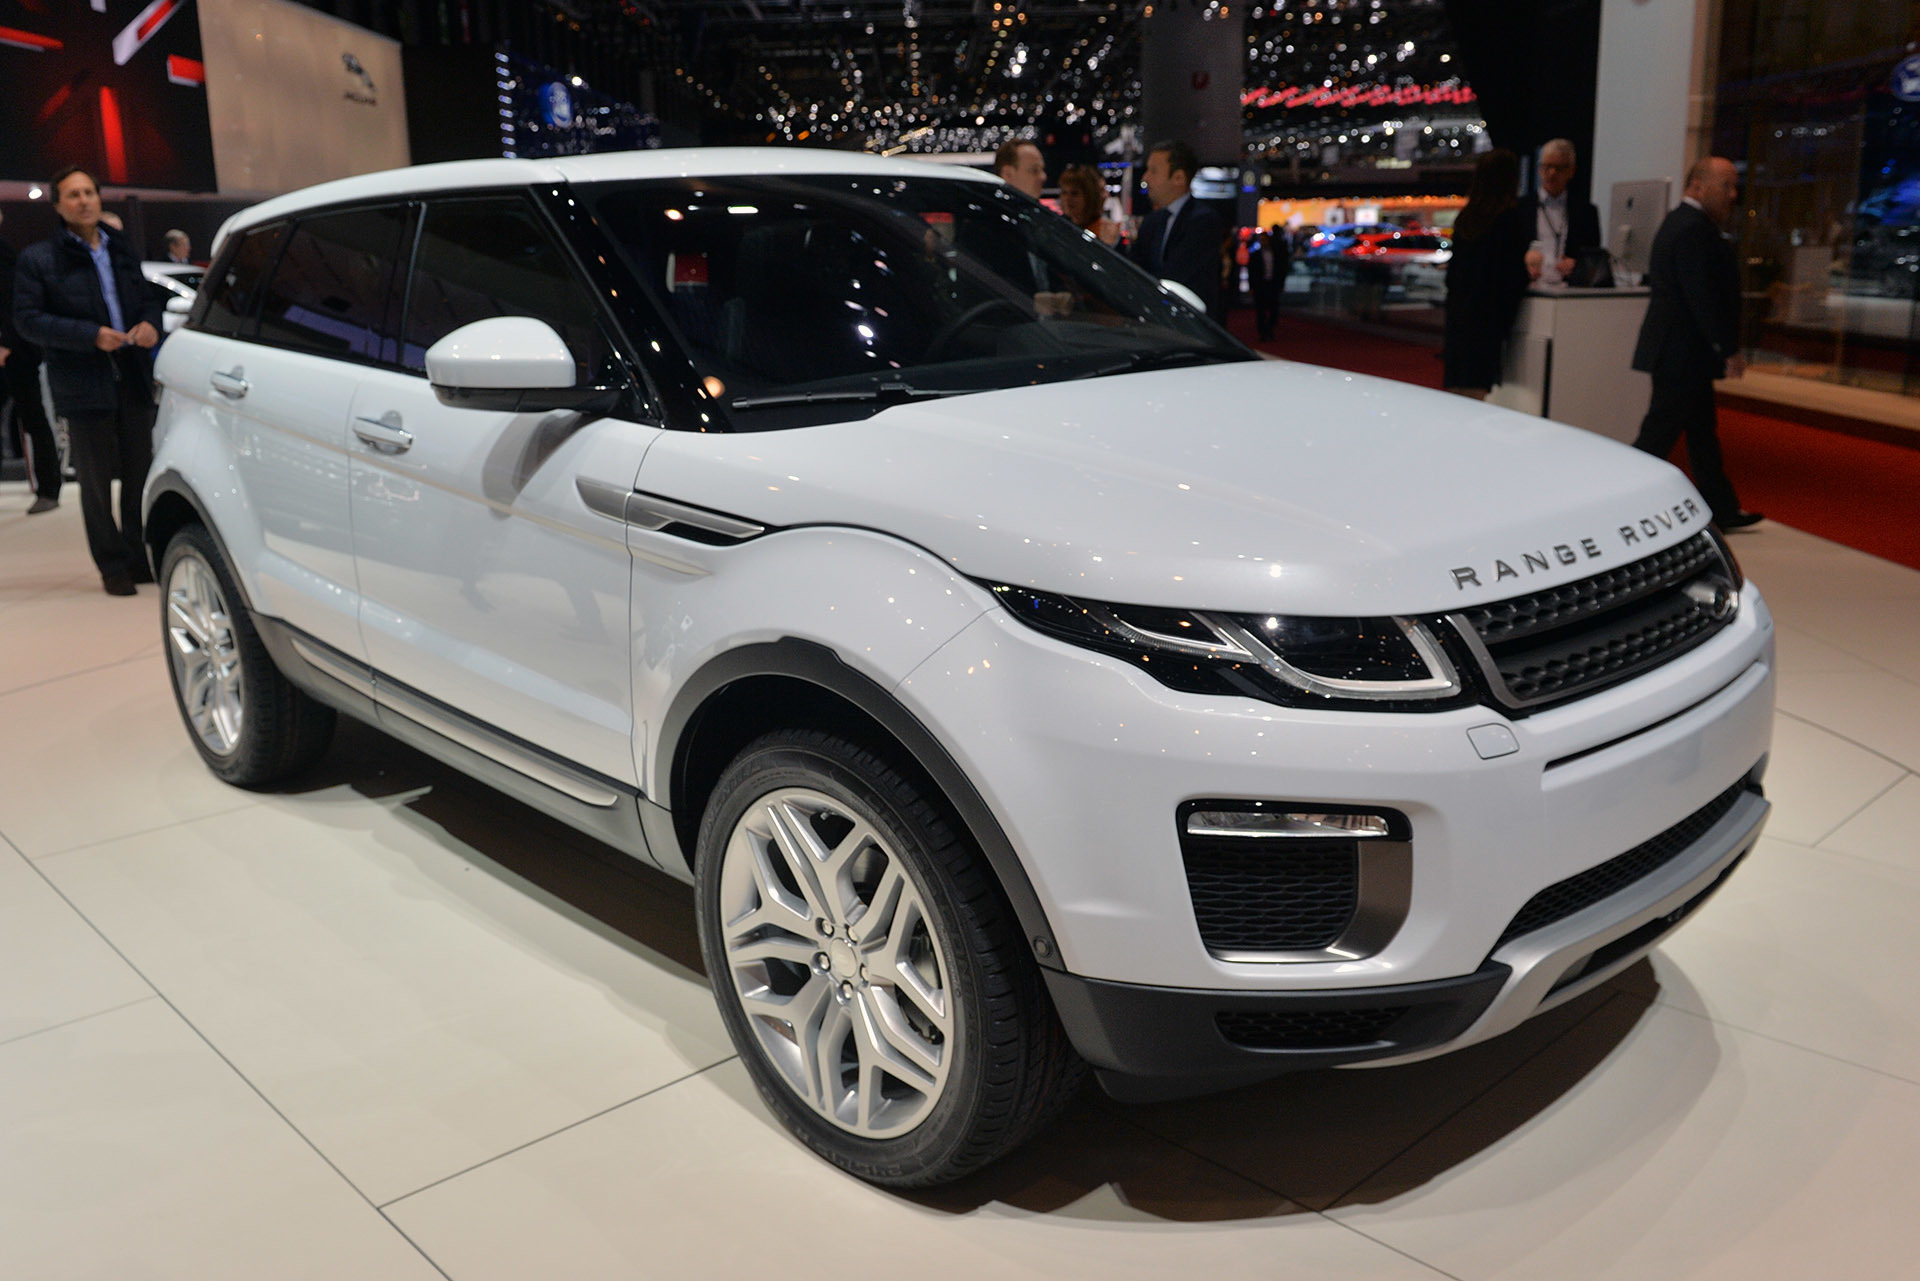 2016 land rover range rover evoque geneva 2015 photo gallery. Black Bedroom Furniture Sets. Home Design Ideas